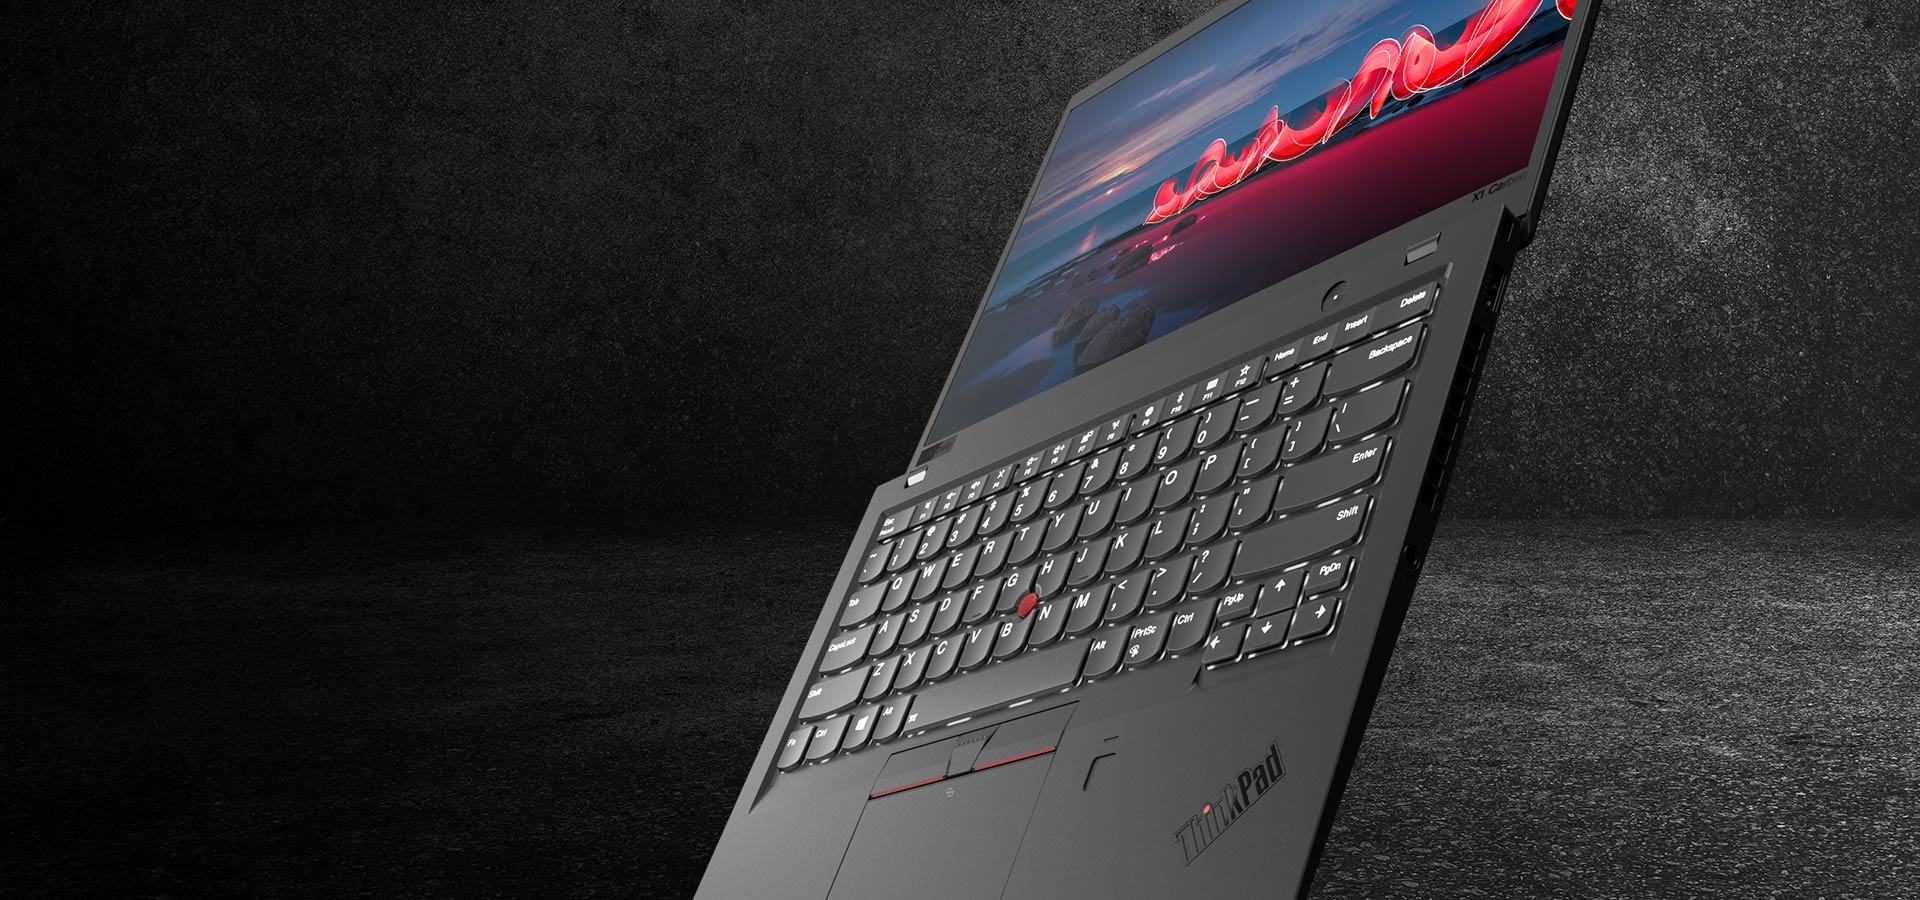 Portable Lenovo ThinkPad X1 Carbon Gen 7